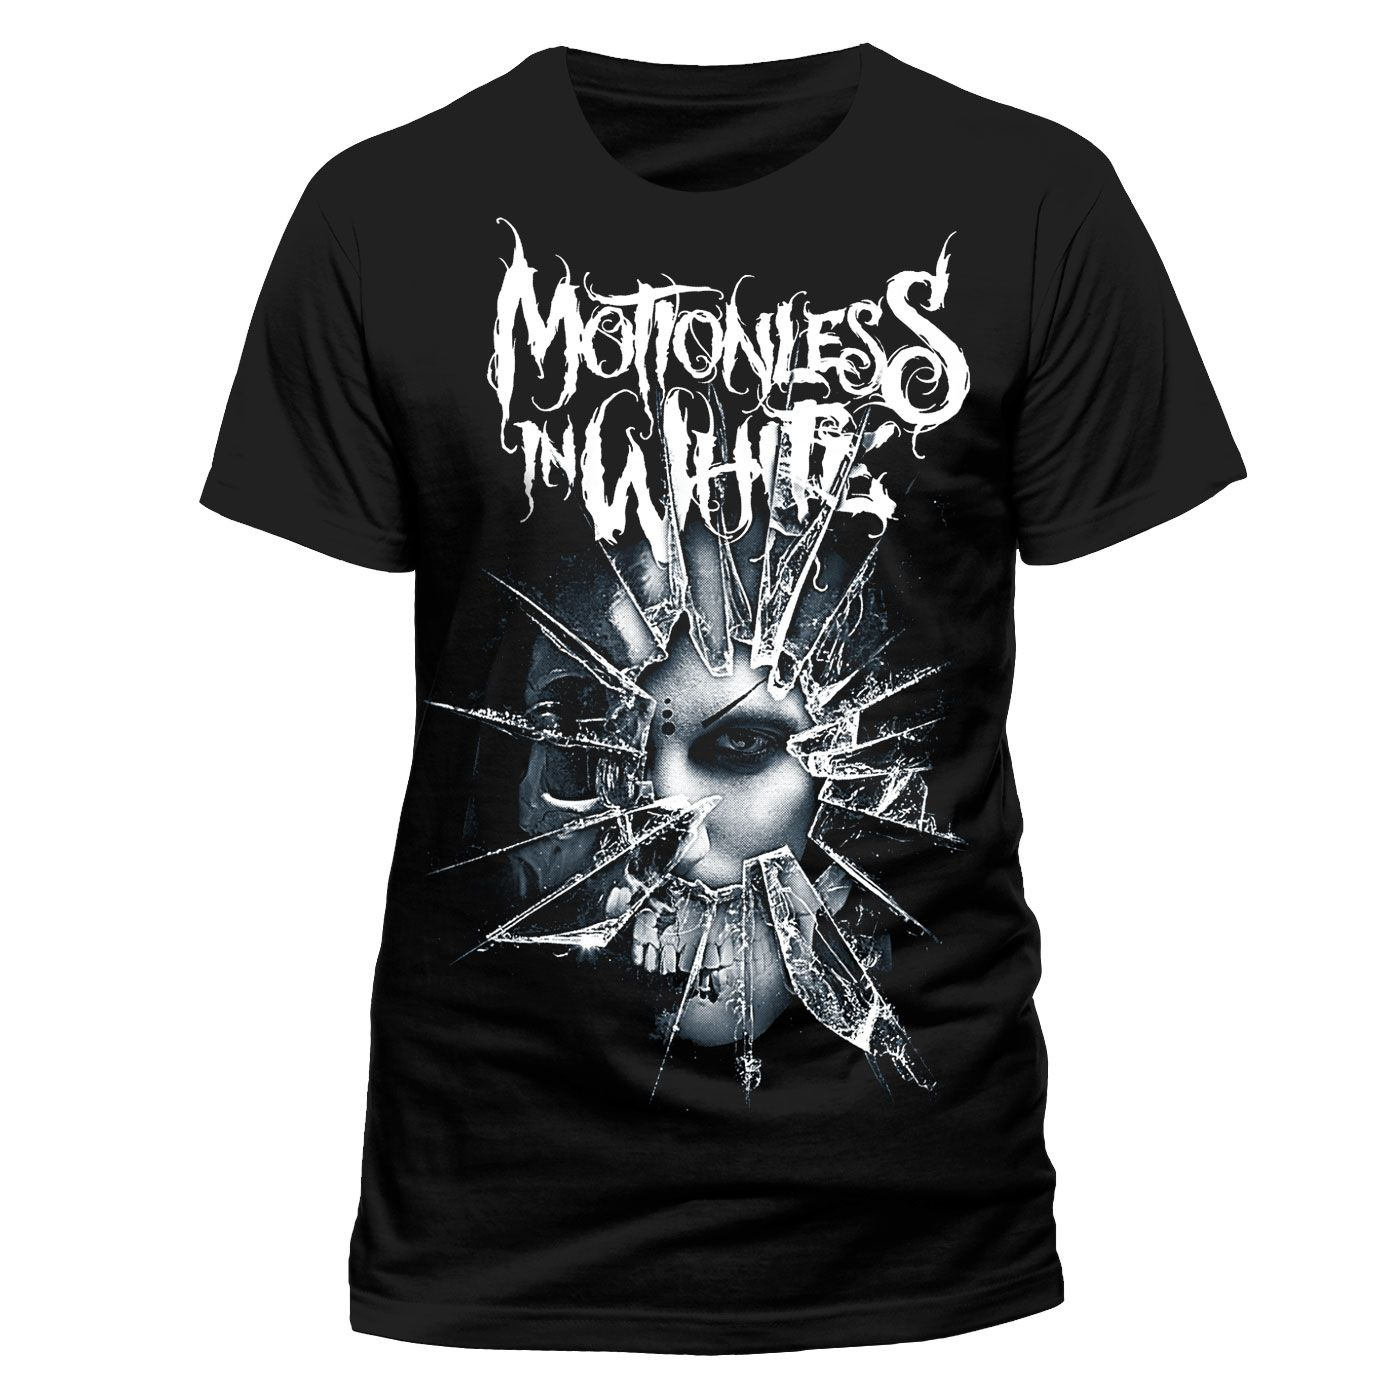 motionless in white backpack - Google Search